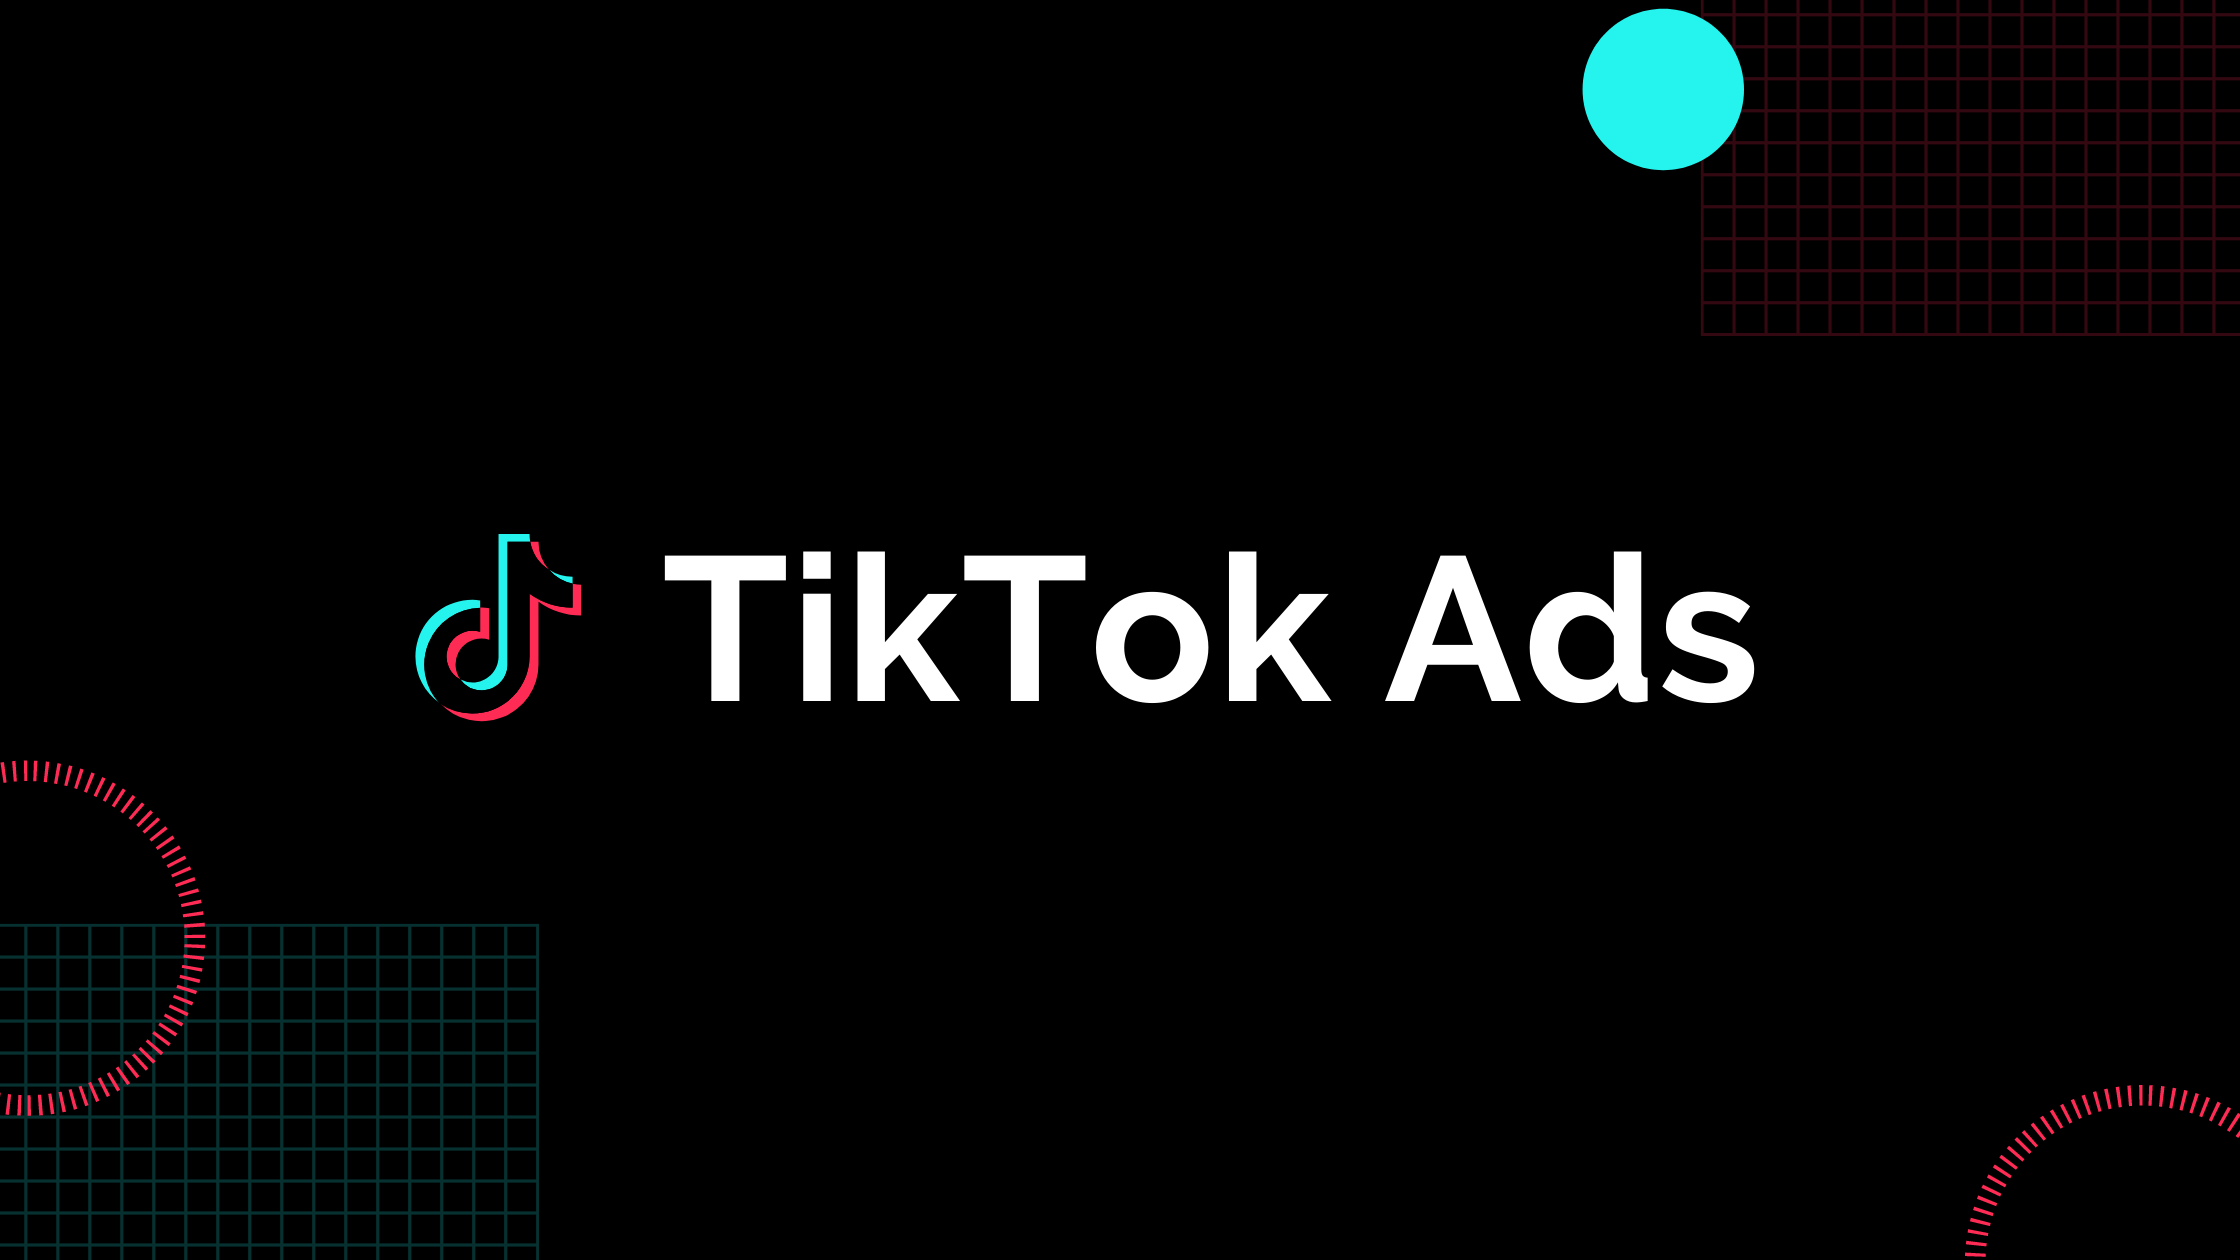 How to grow your business with TikTok